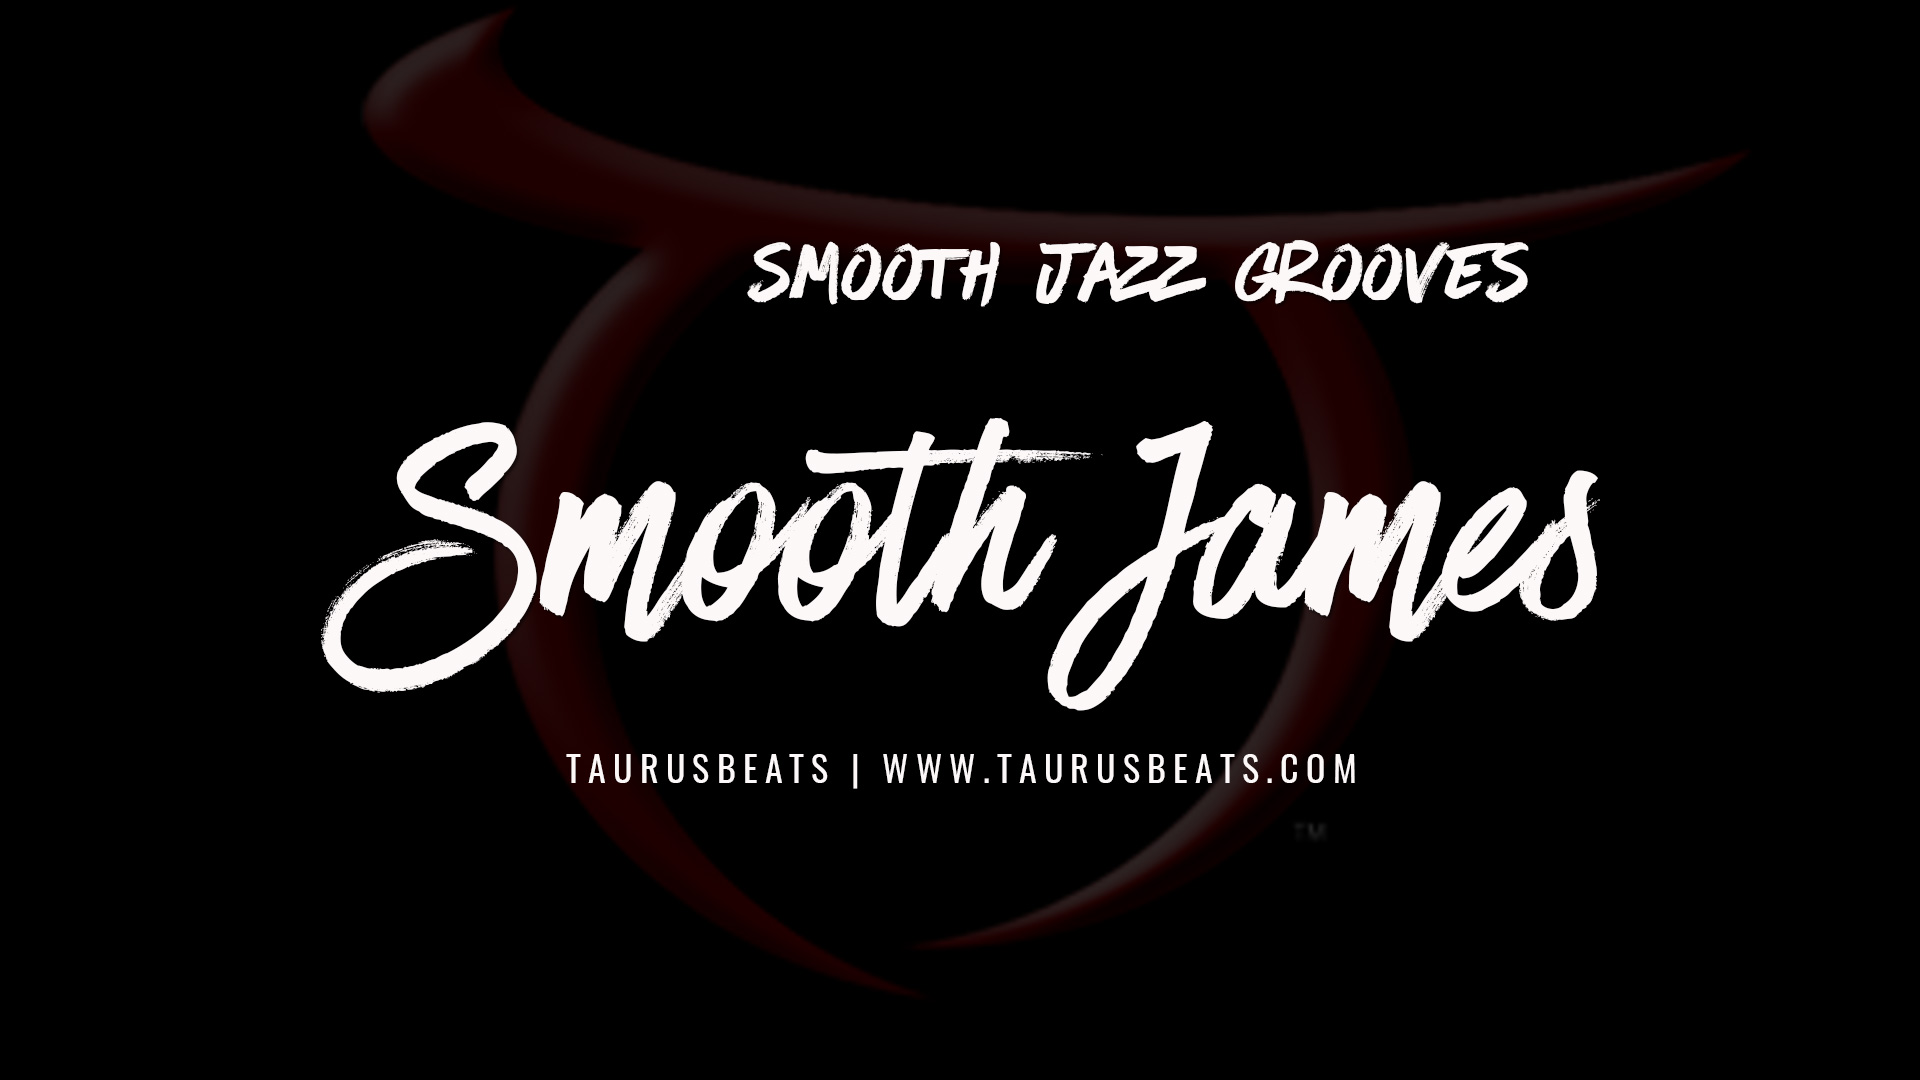 image for Smooth James (2005)